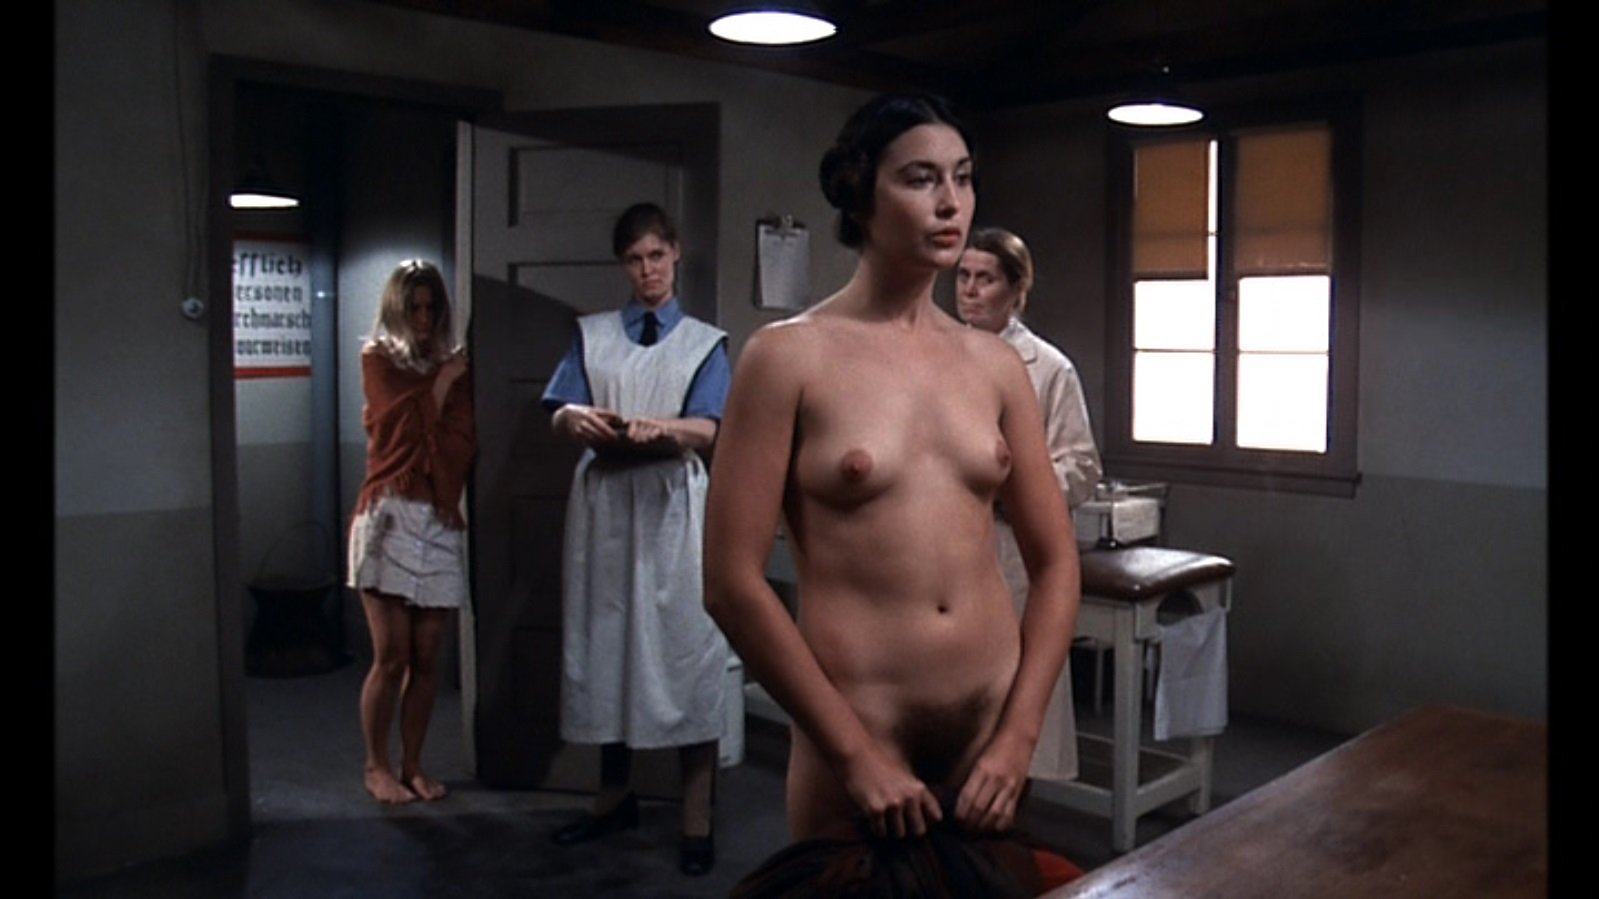 german-young-movie-star-nude